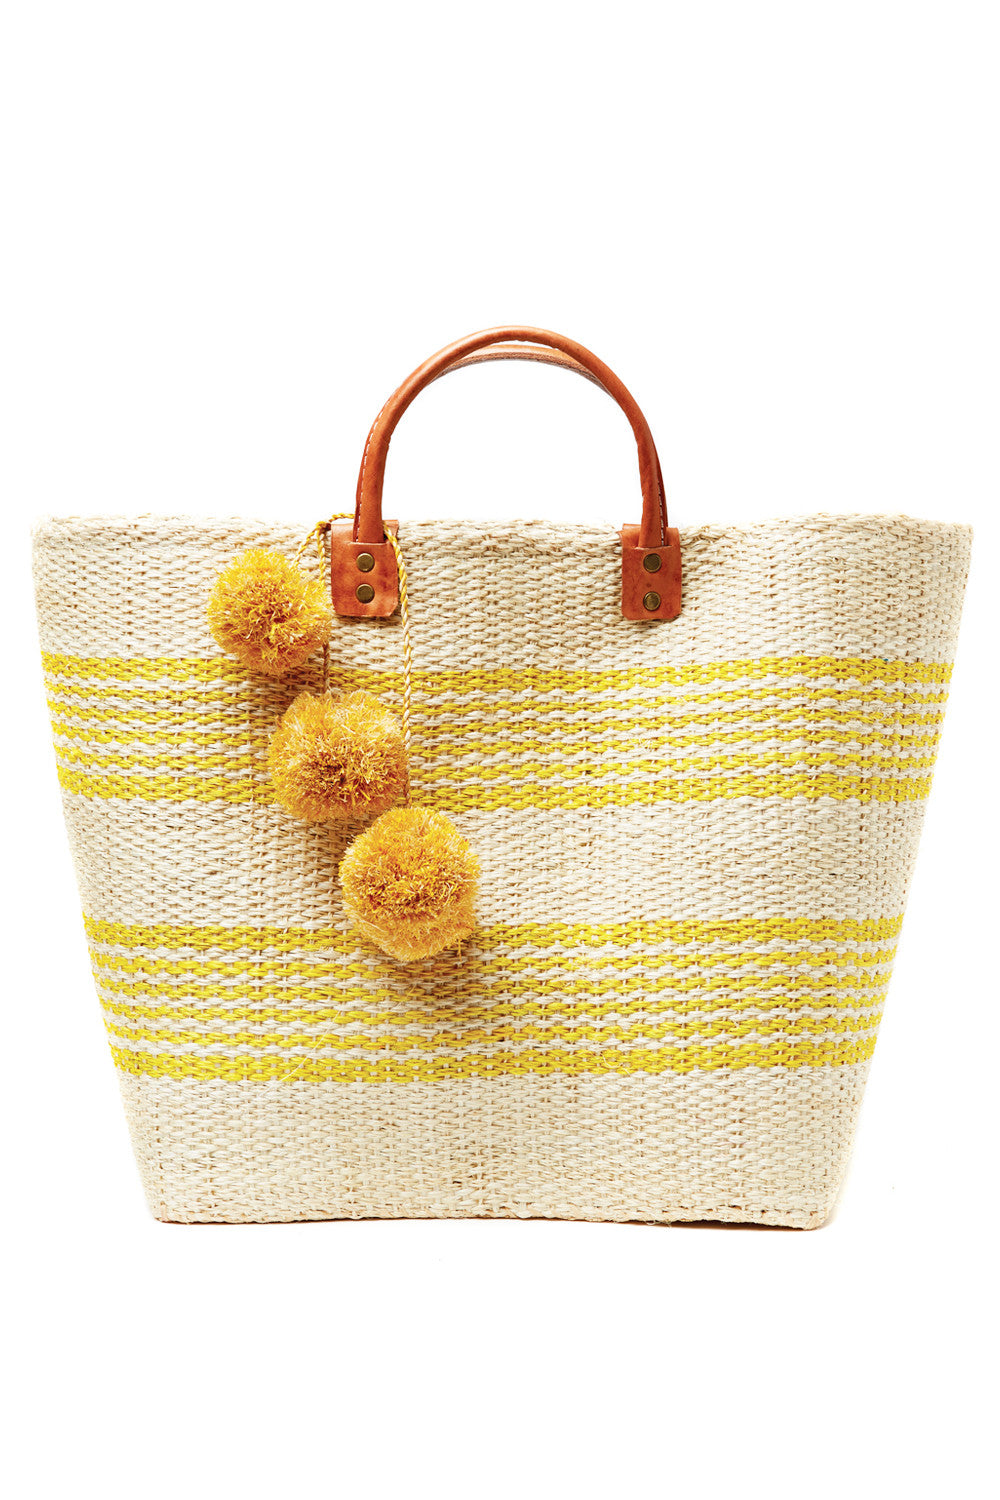 Caracas Basket Tote in Sunflower